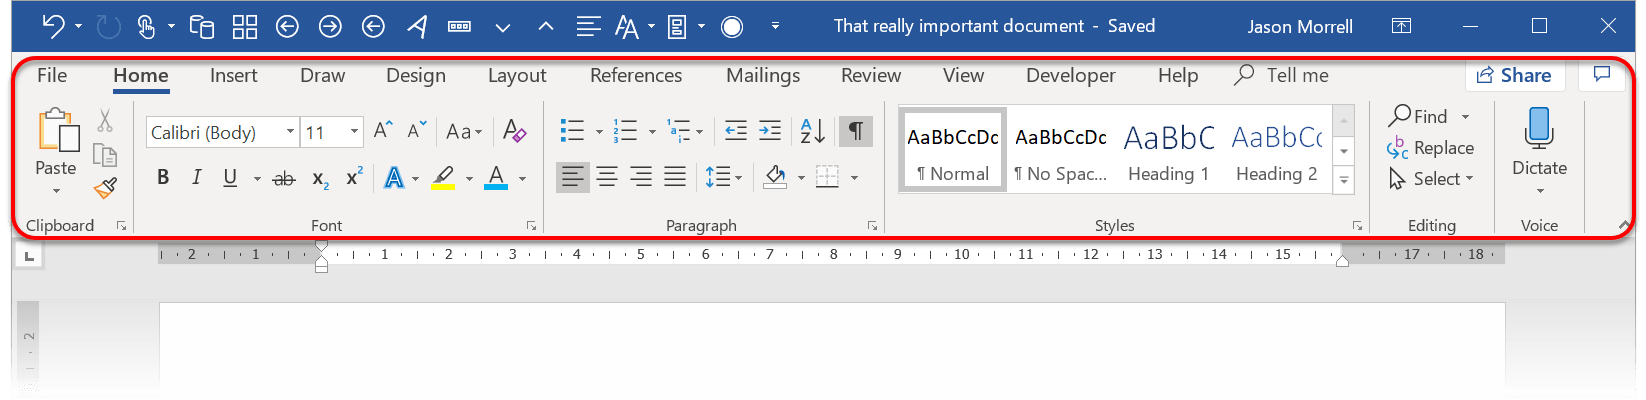 The 'Show Tabs and Commands' option in Word